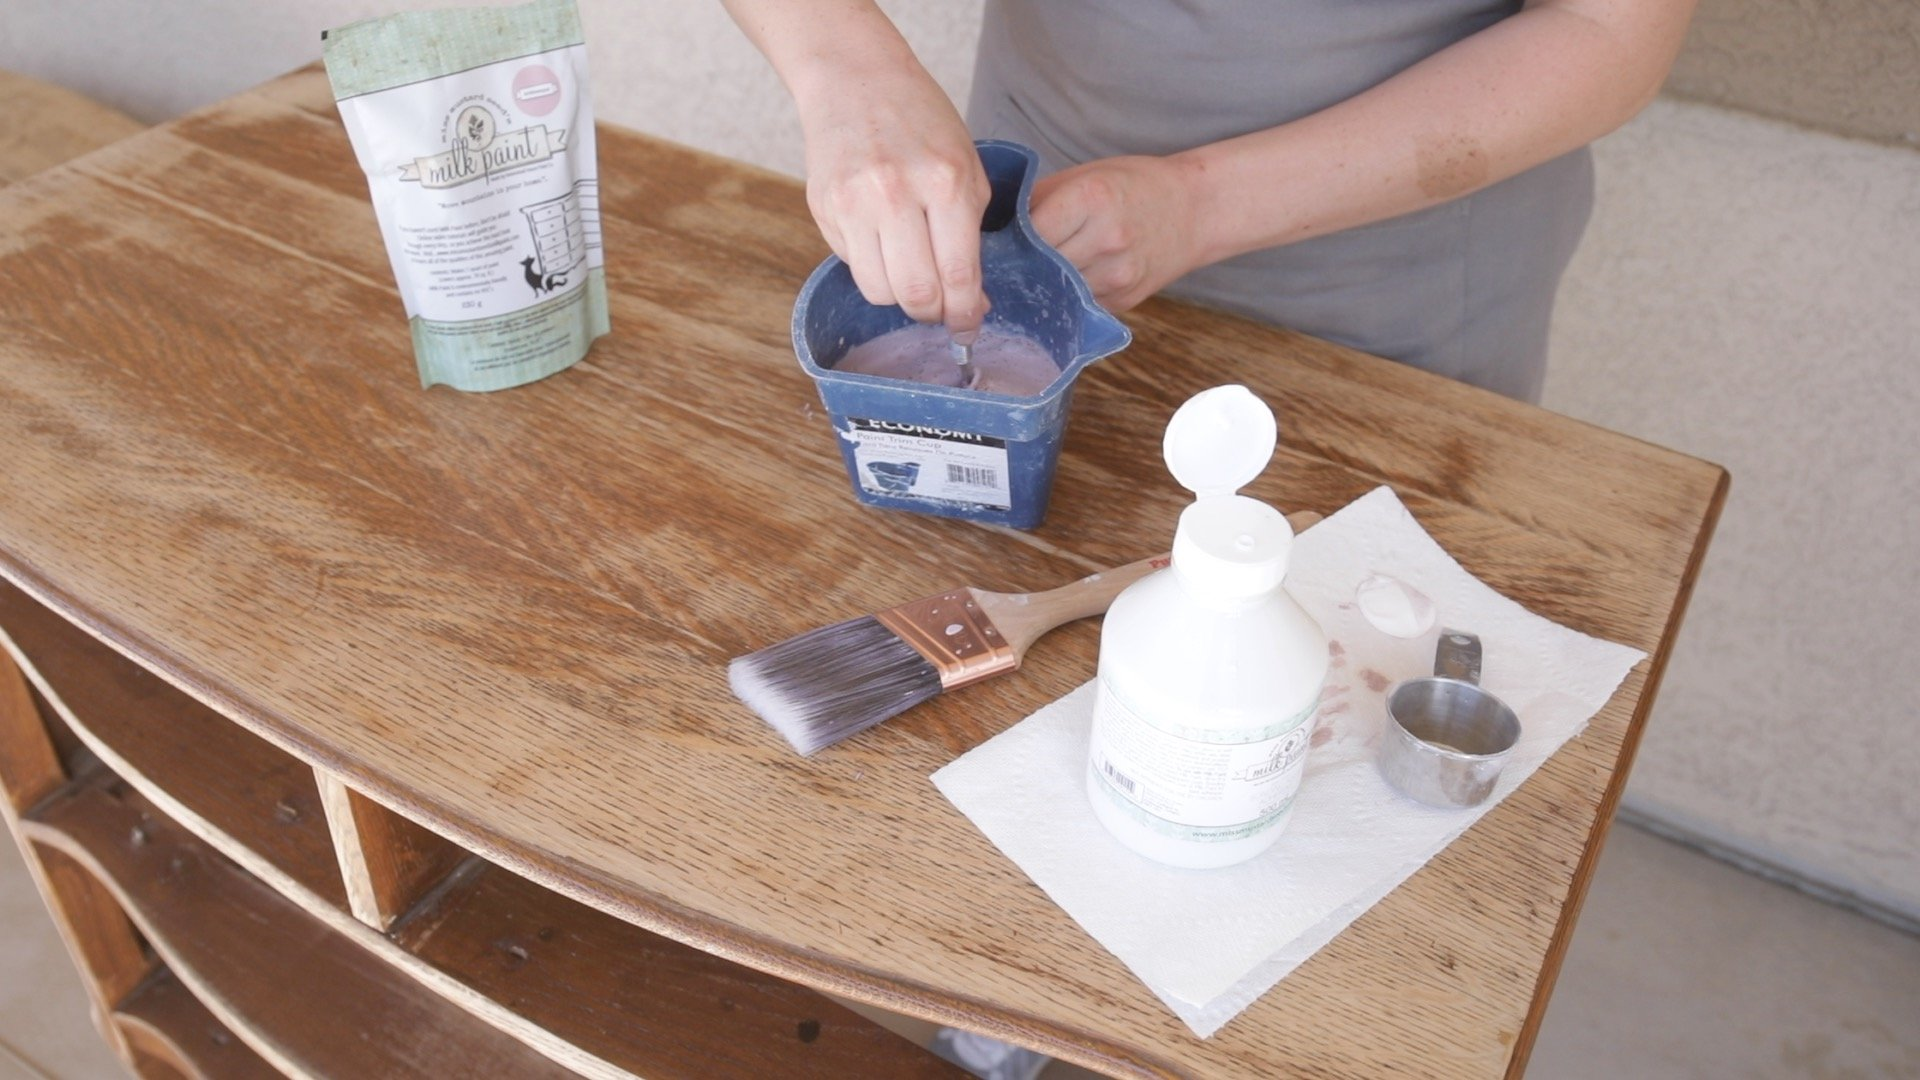 How to Paint Furniture-How to Apply a Solid Paint Finish With Milk Paint3